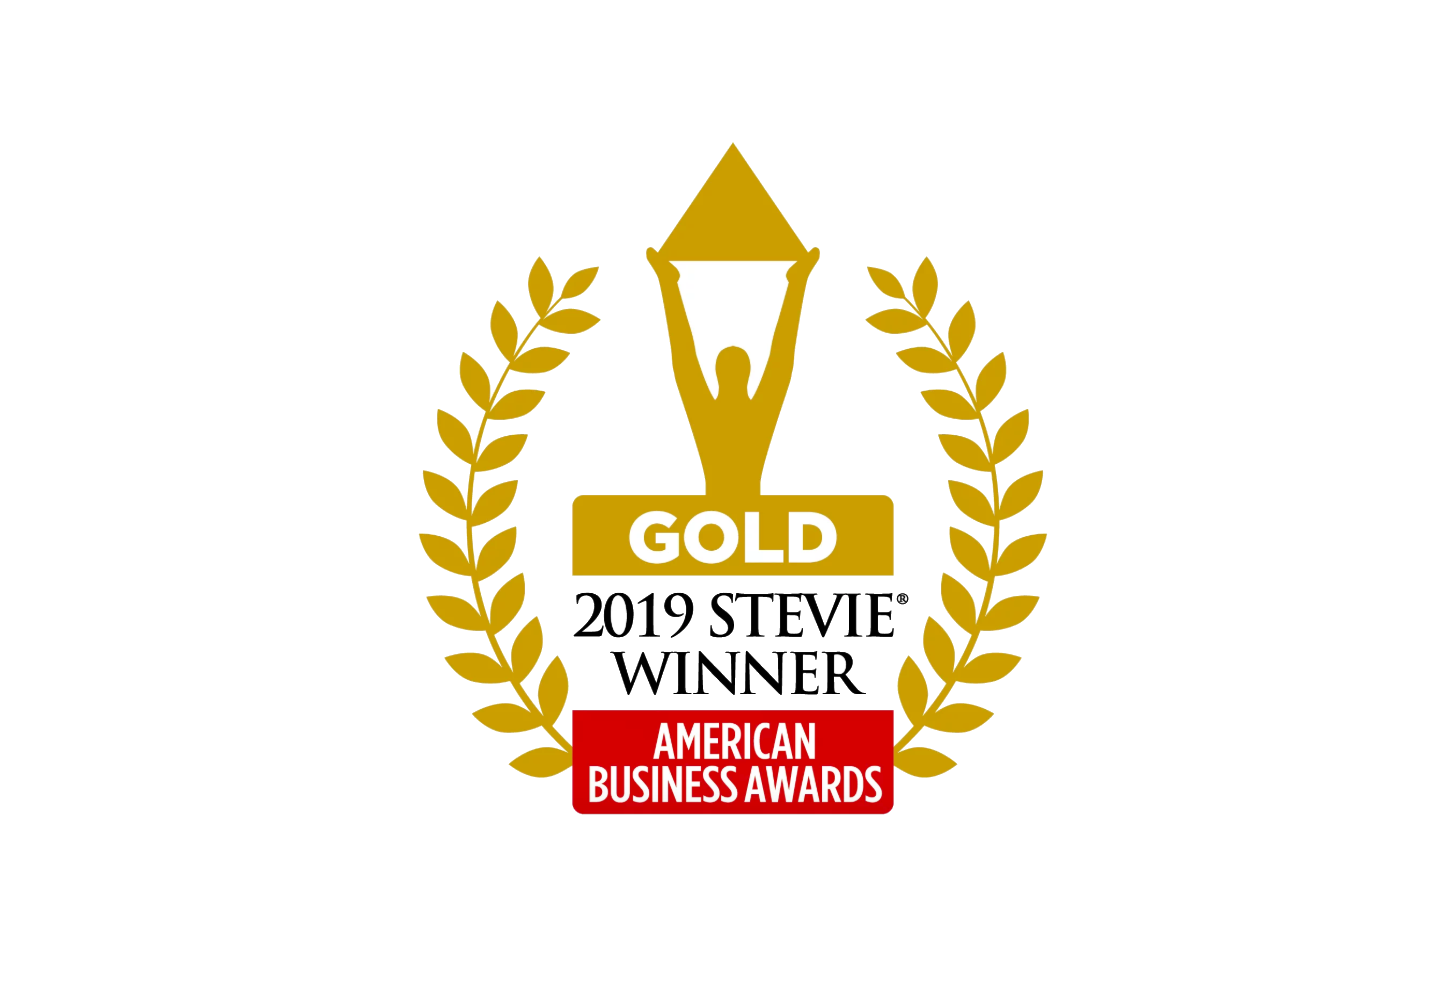 Twenty Over Ten Honored as a Gold Stevie® Award Winner in 2019 American Business Awards® Featured Image